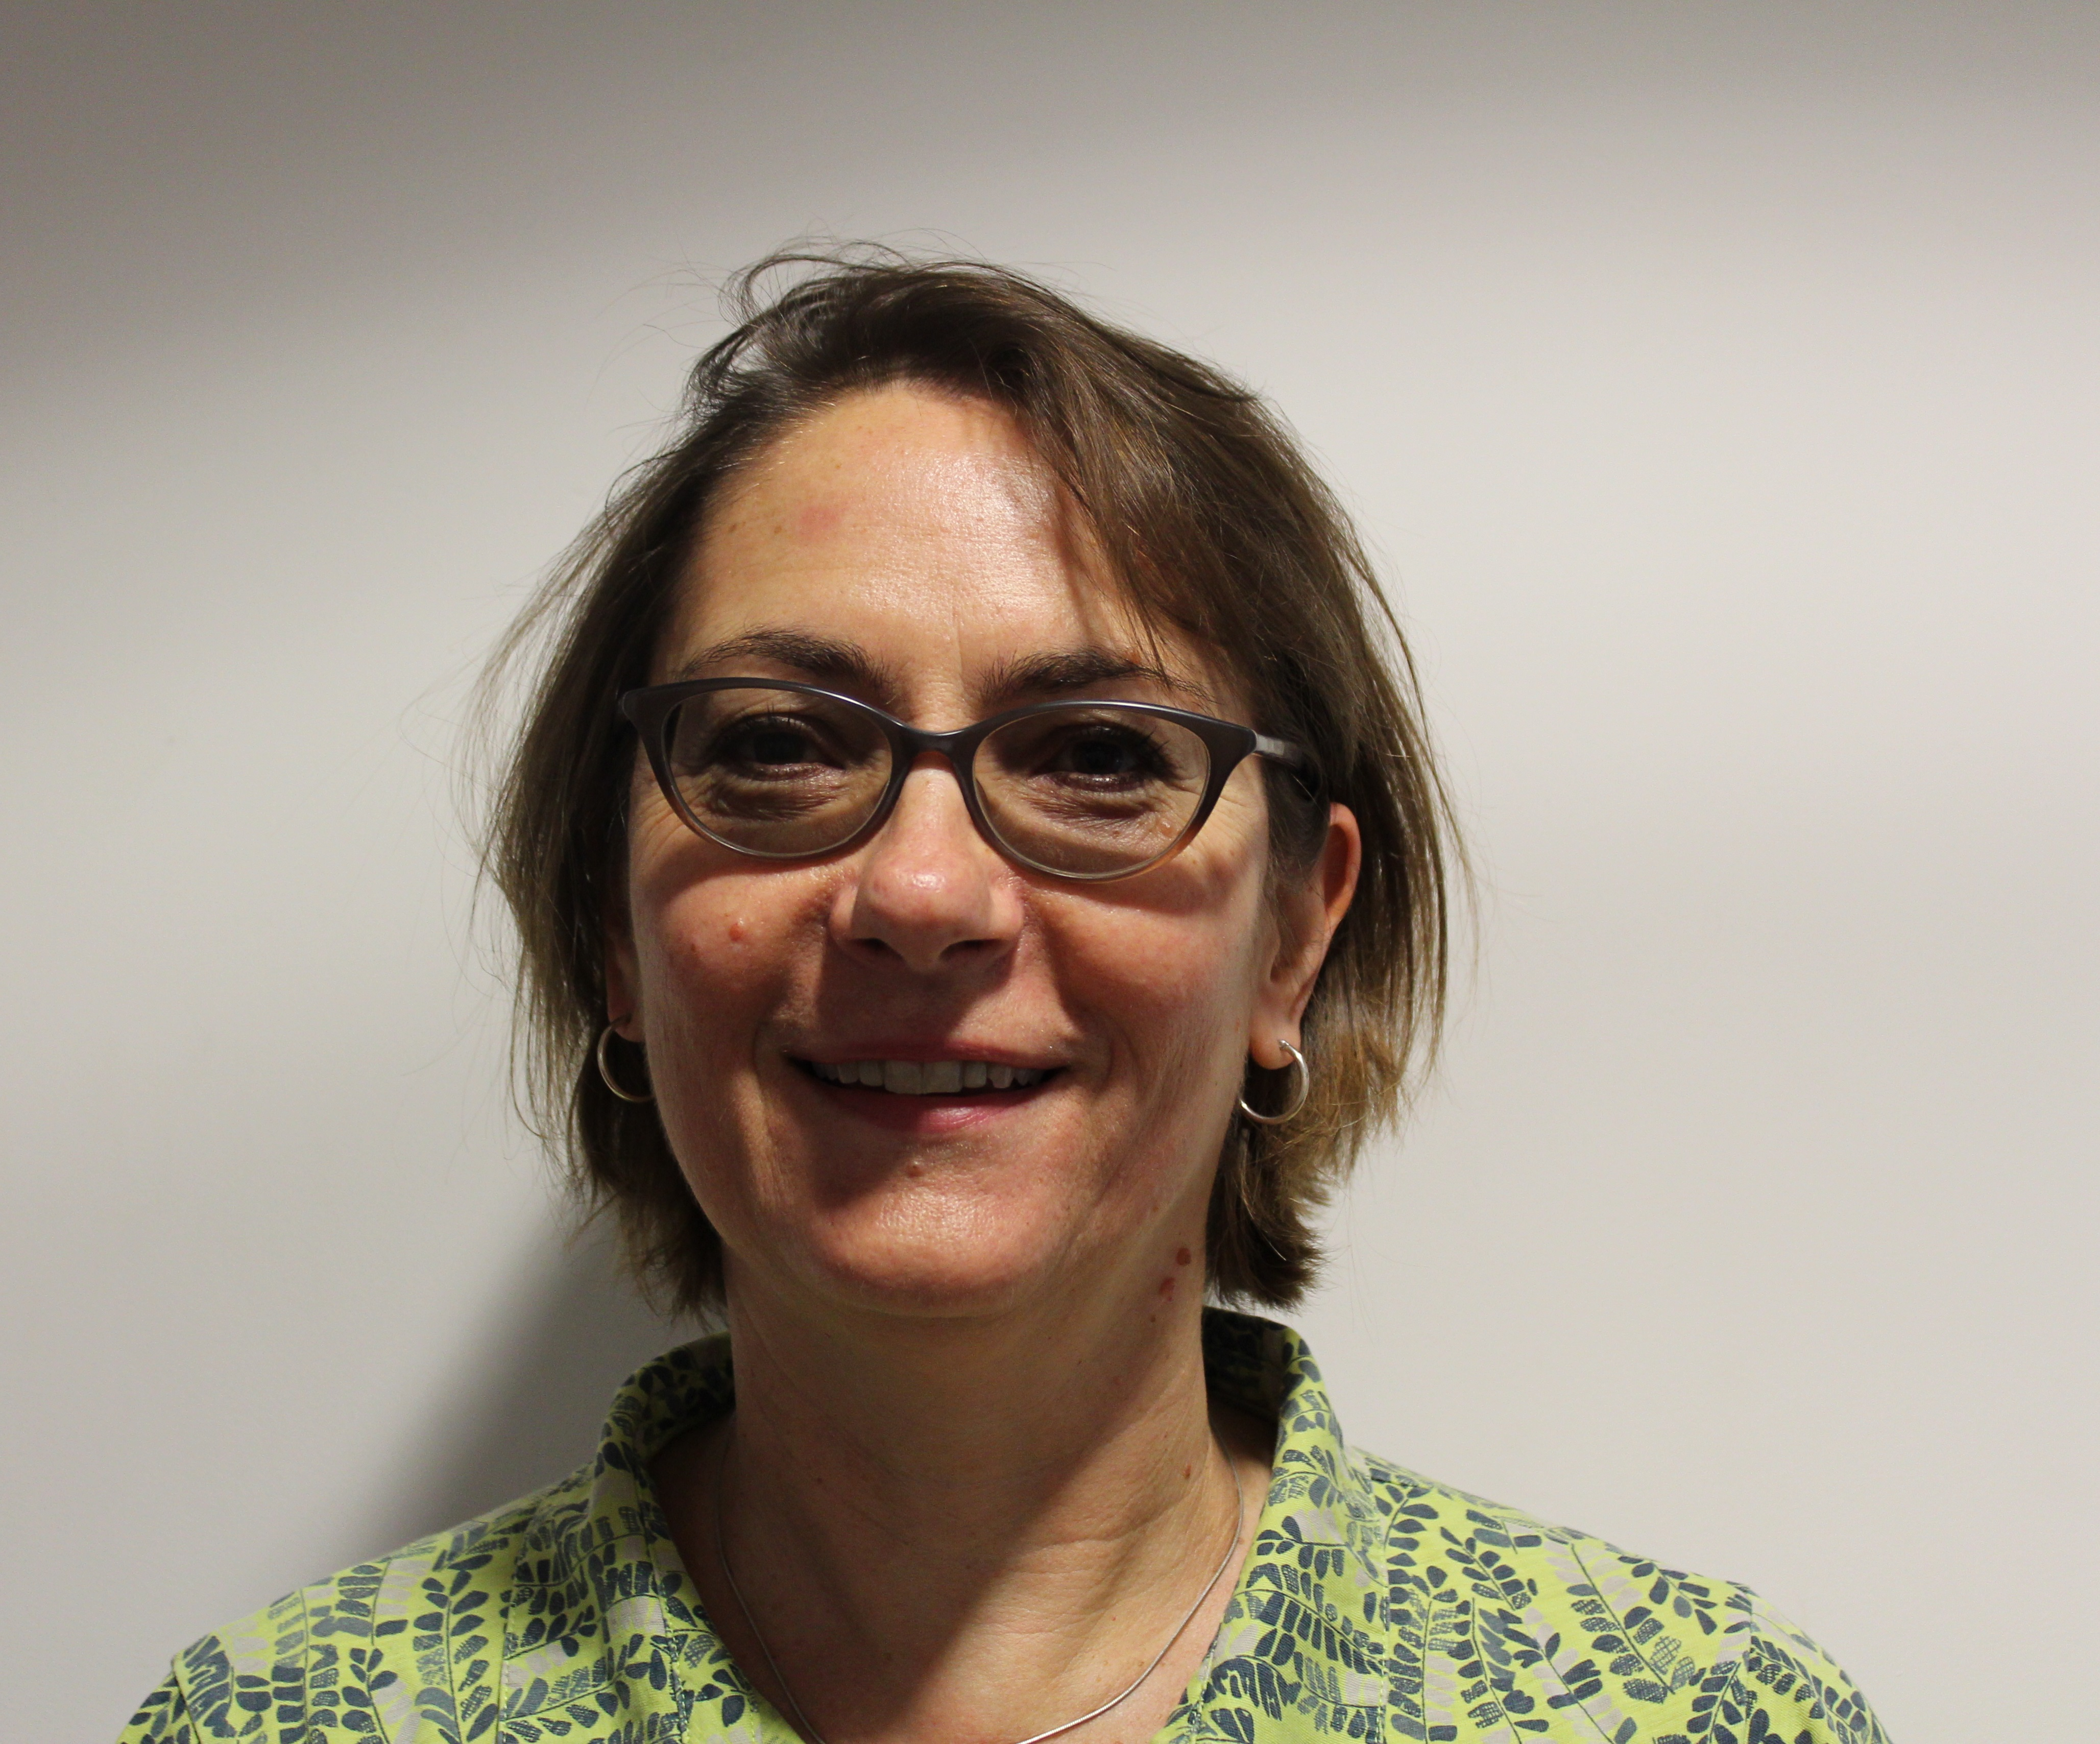 Ms Tina Courtenay-Thompson : Staff Governor – Teaching; Member of the Staffing Committee; Member of the Standards Committee; Staff Voice Link Governor, and Teaching and Learning Link Governor. Appointed September 2018